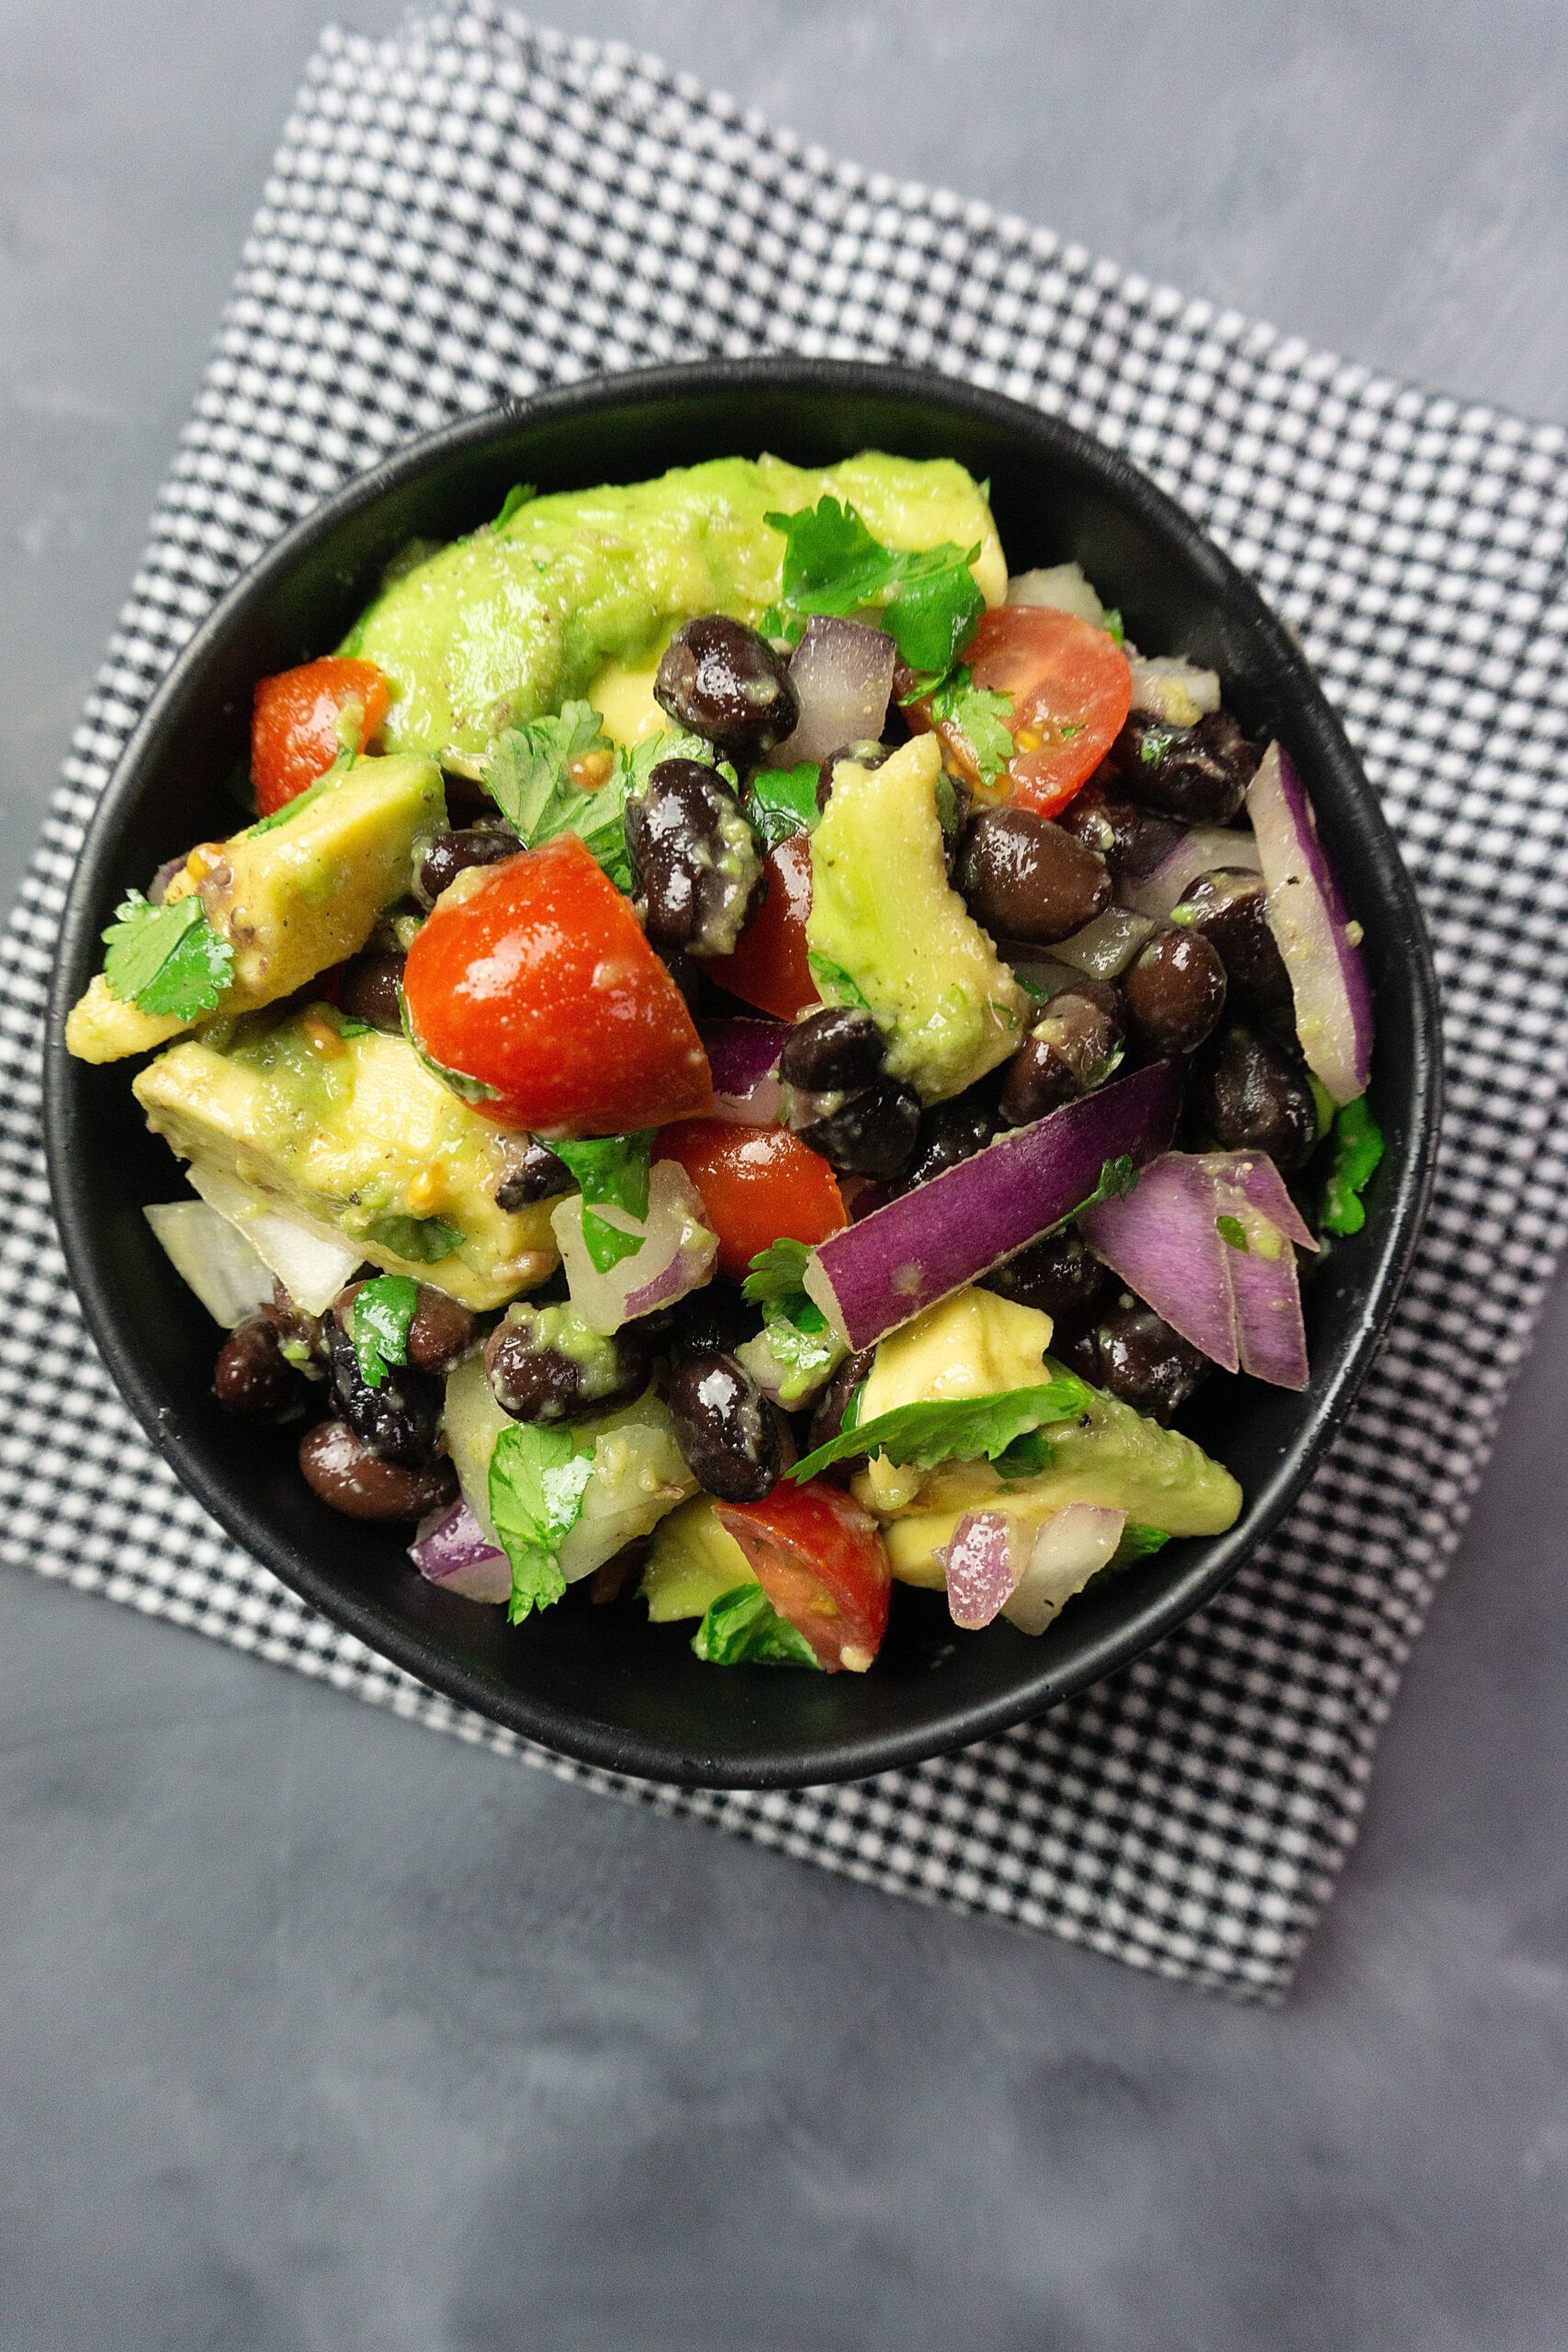 A top down look at the finished black bean salad for weight watchers ready to eat.